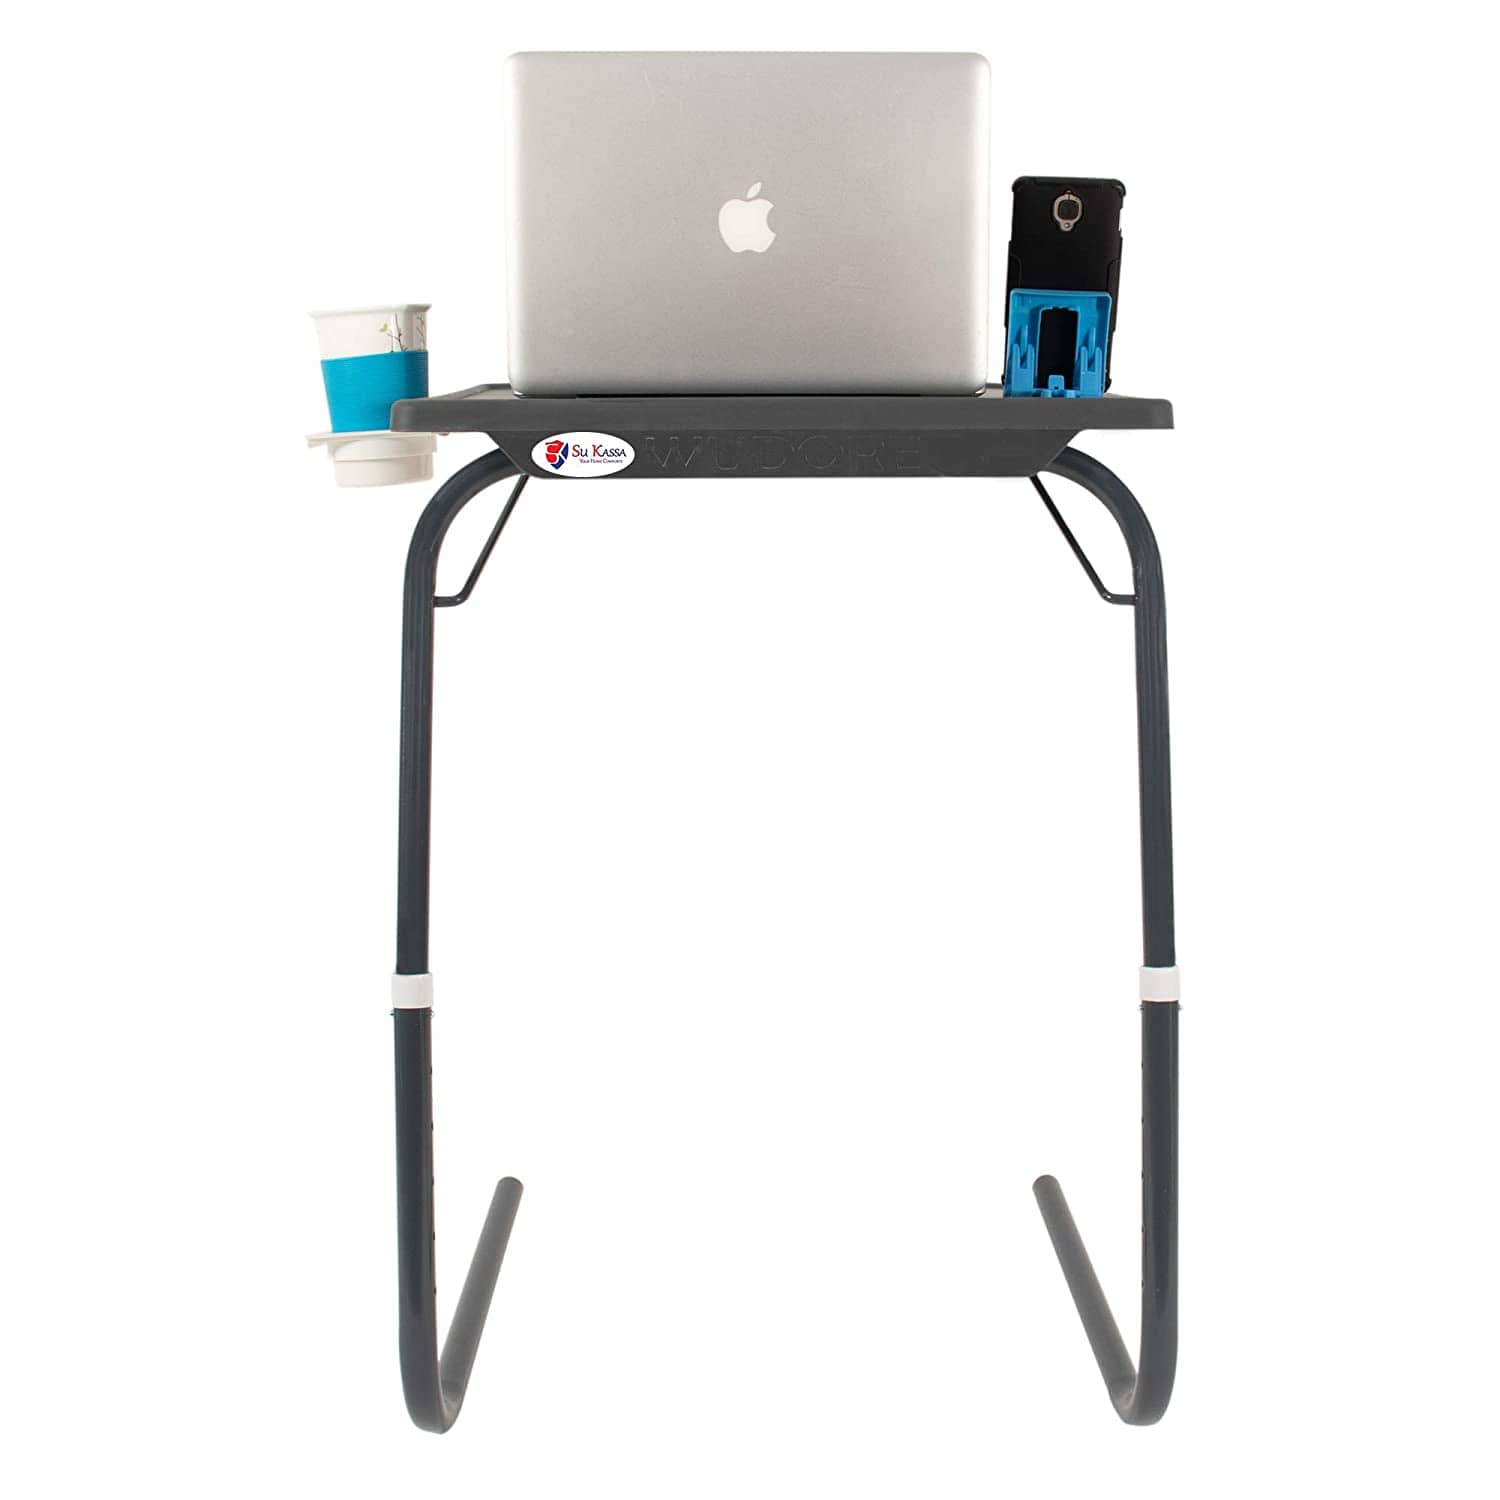 SU KASSA Wudore Series -Multi Purpose Utility Table-  Table Full Grey with Two Mobile Holders. - Kasa's Mart